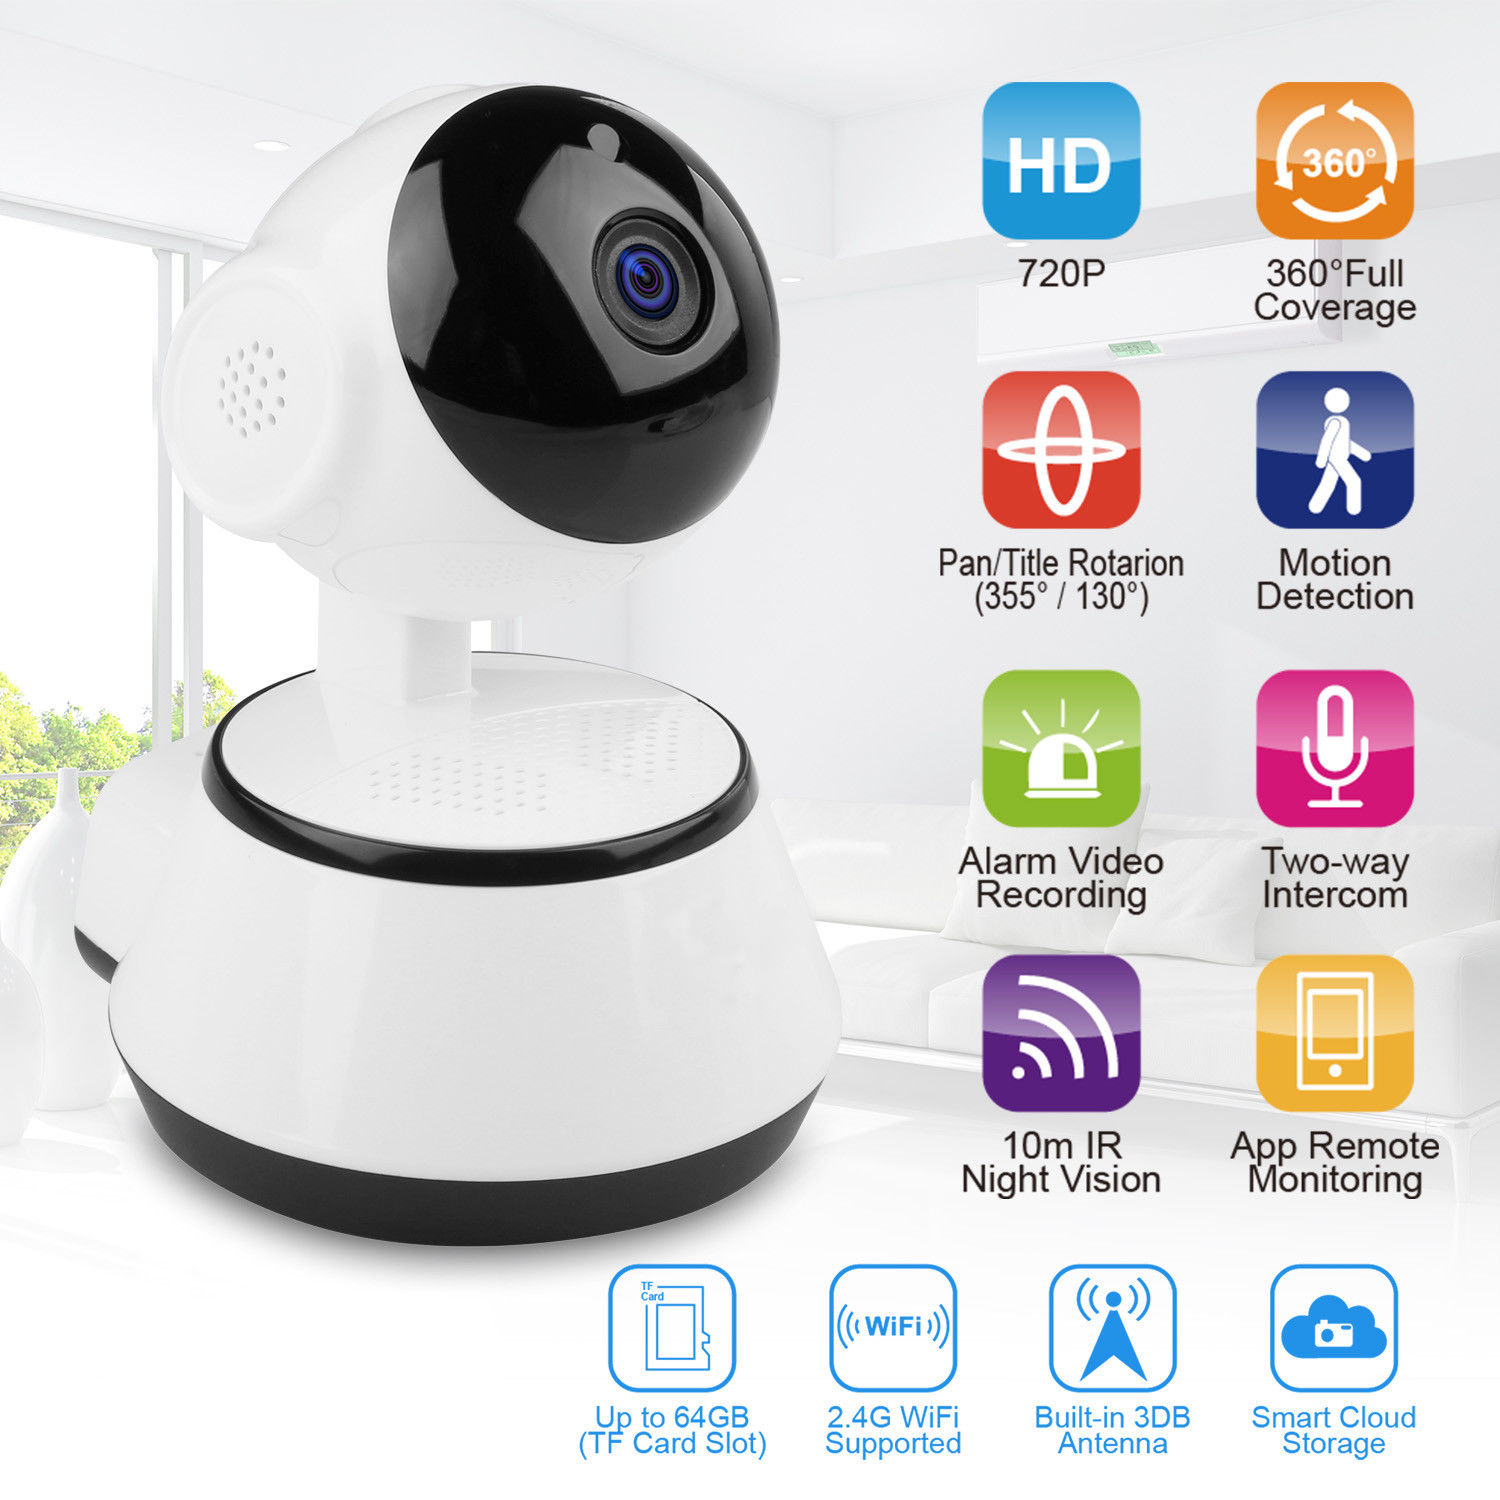 Baby Monitor Home Security WiFi IP Camera 720P HD Wireless Smart Baby Camera Audio Video Record Surveillance Camera WholesaleBaby Monitor Home Security WiFi IP Camera 720P HD Wireless Smart Baby Camera Audio Video Record Surveillance Camera Wholesale